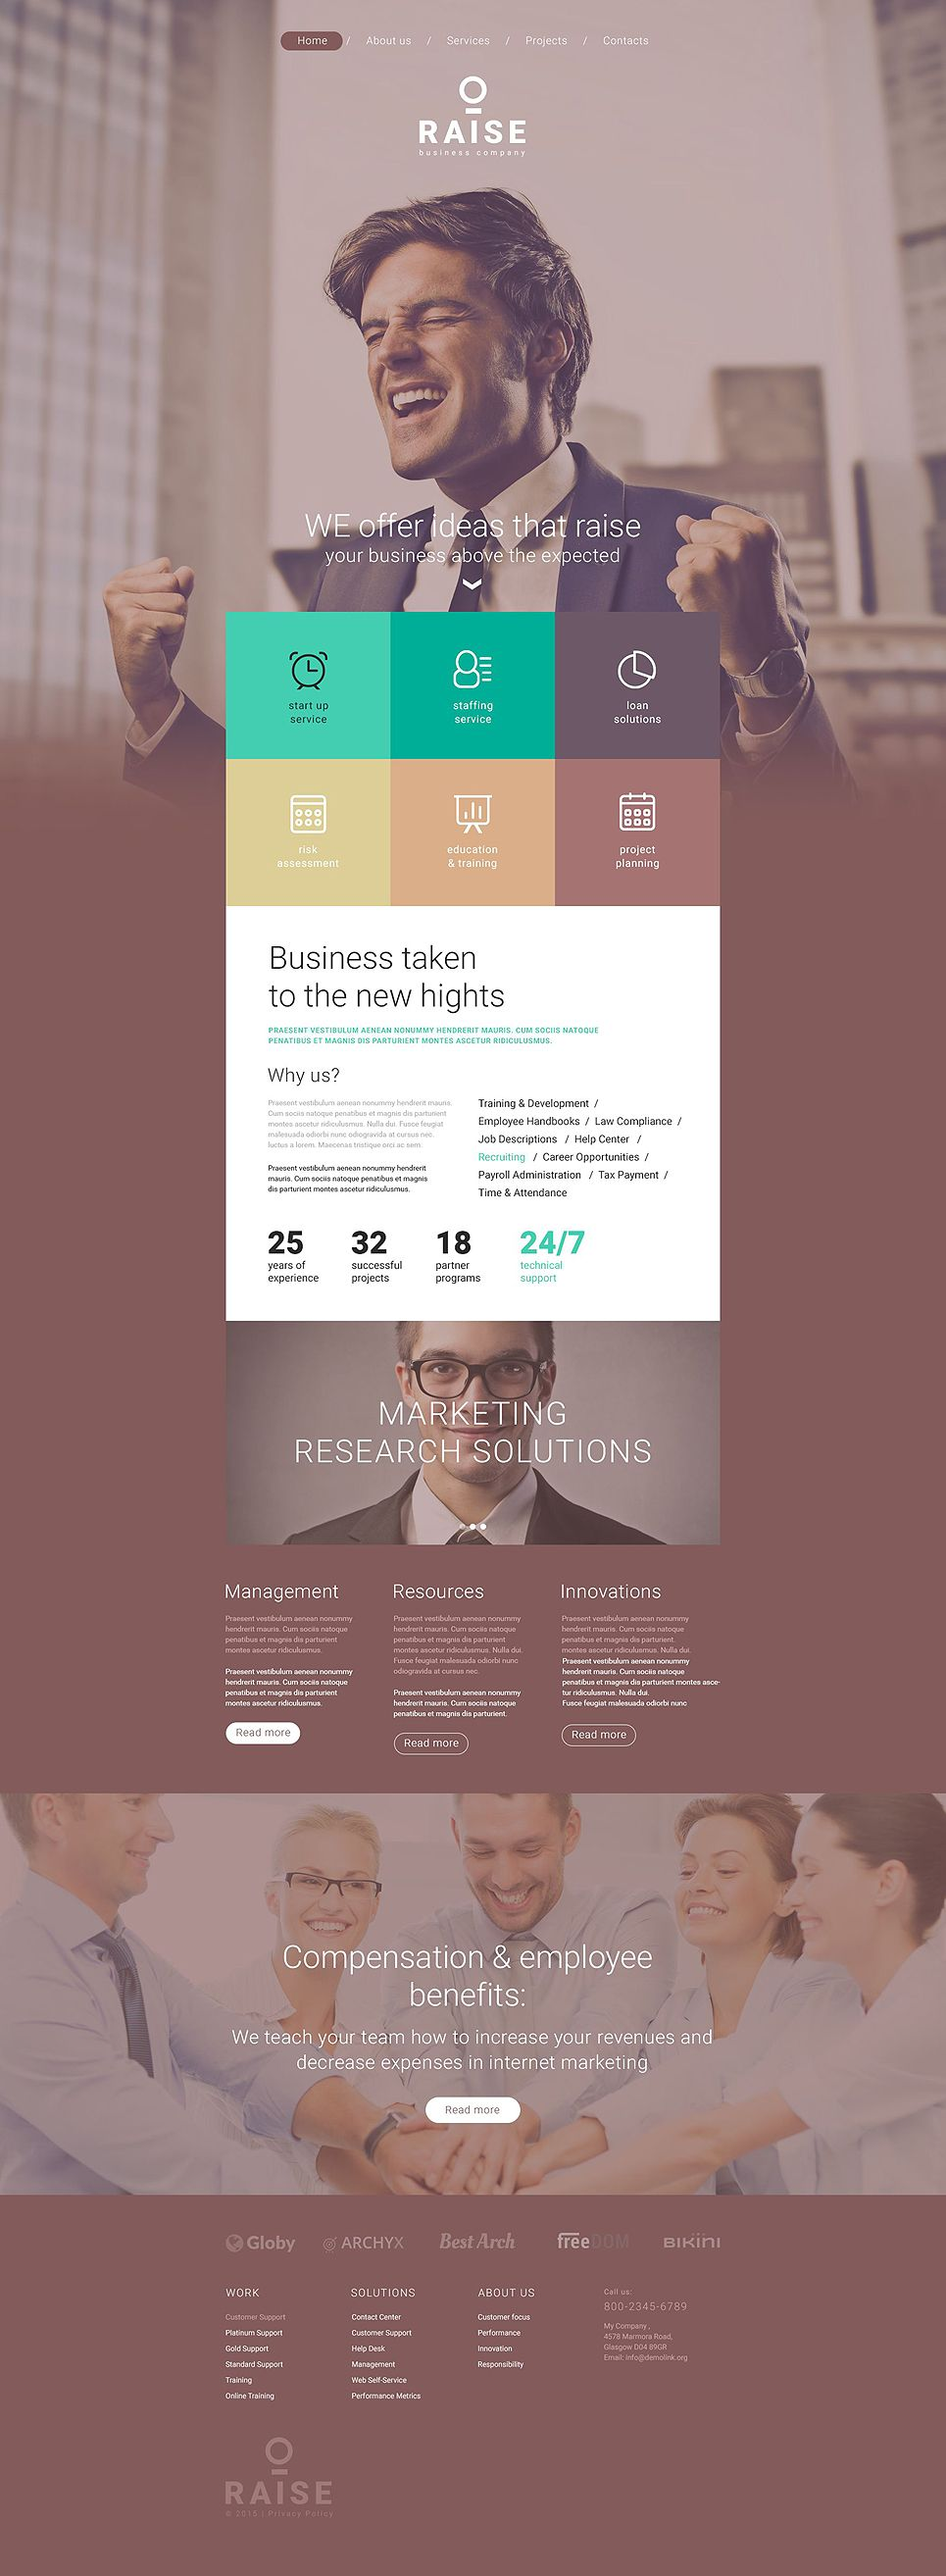 Raise Website Template design Pinterest